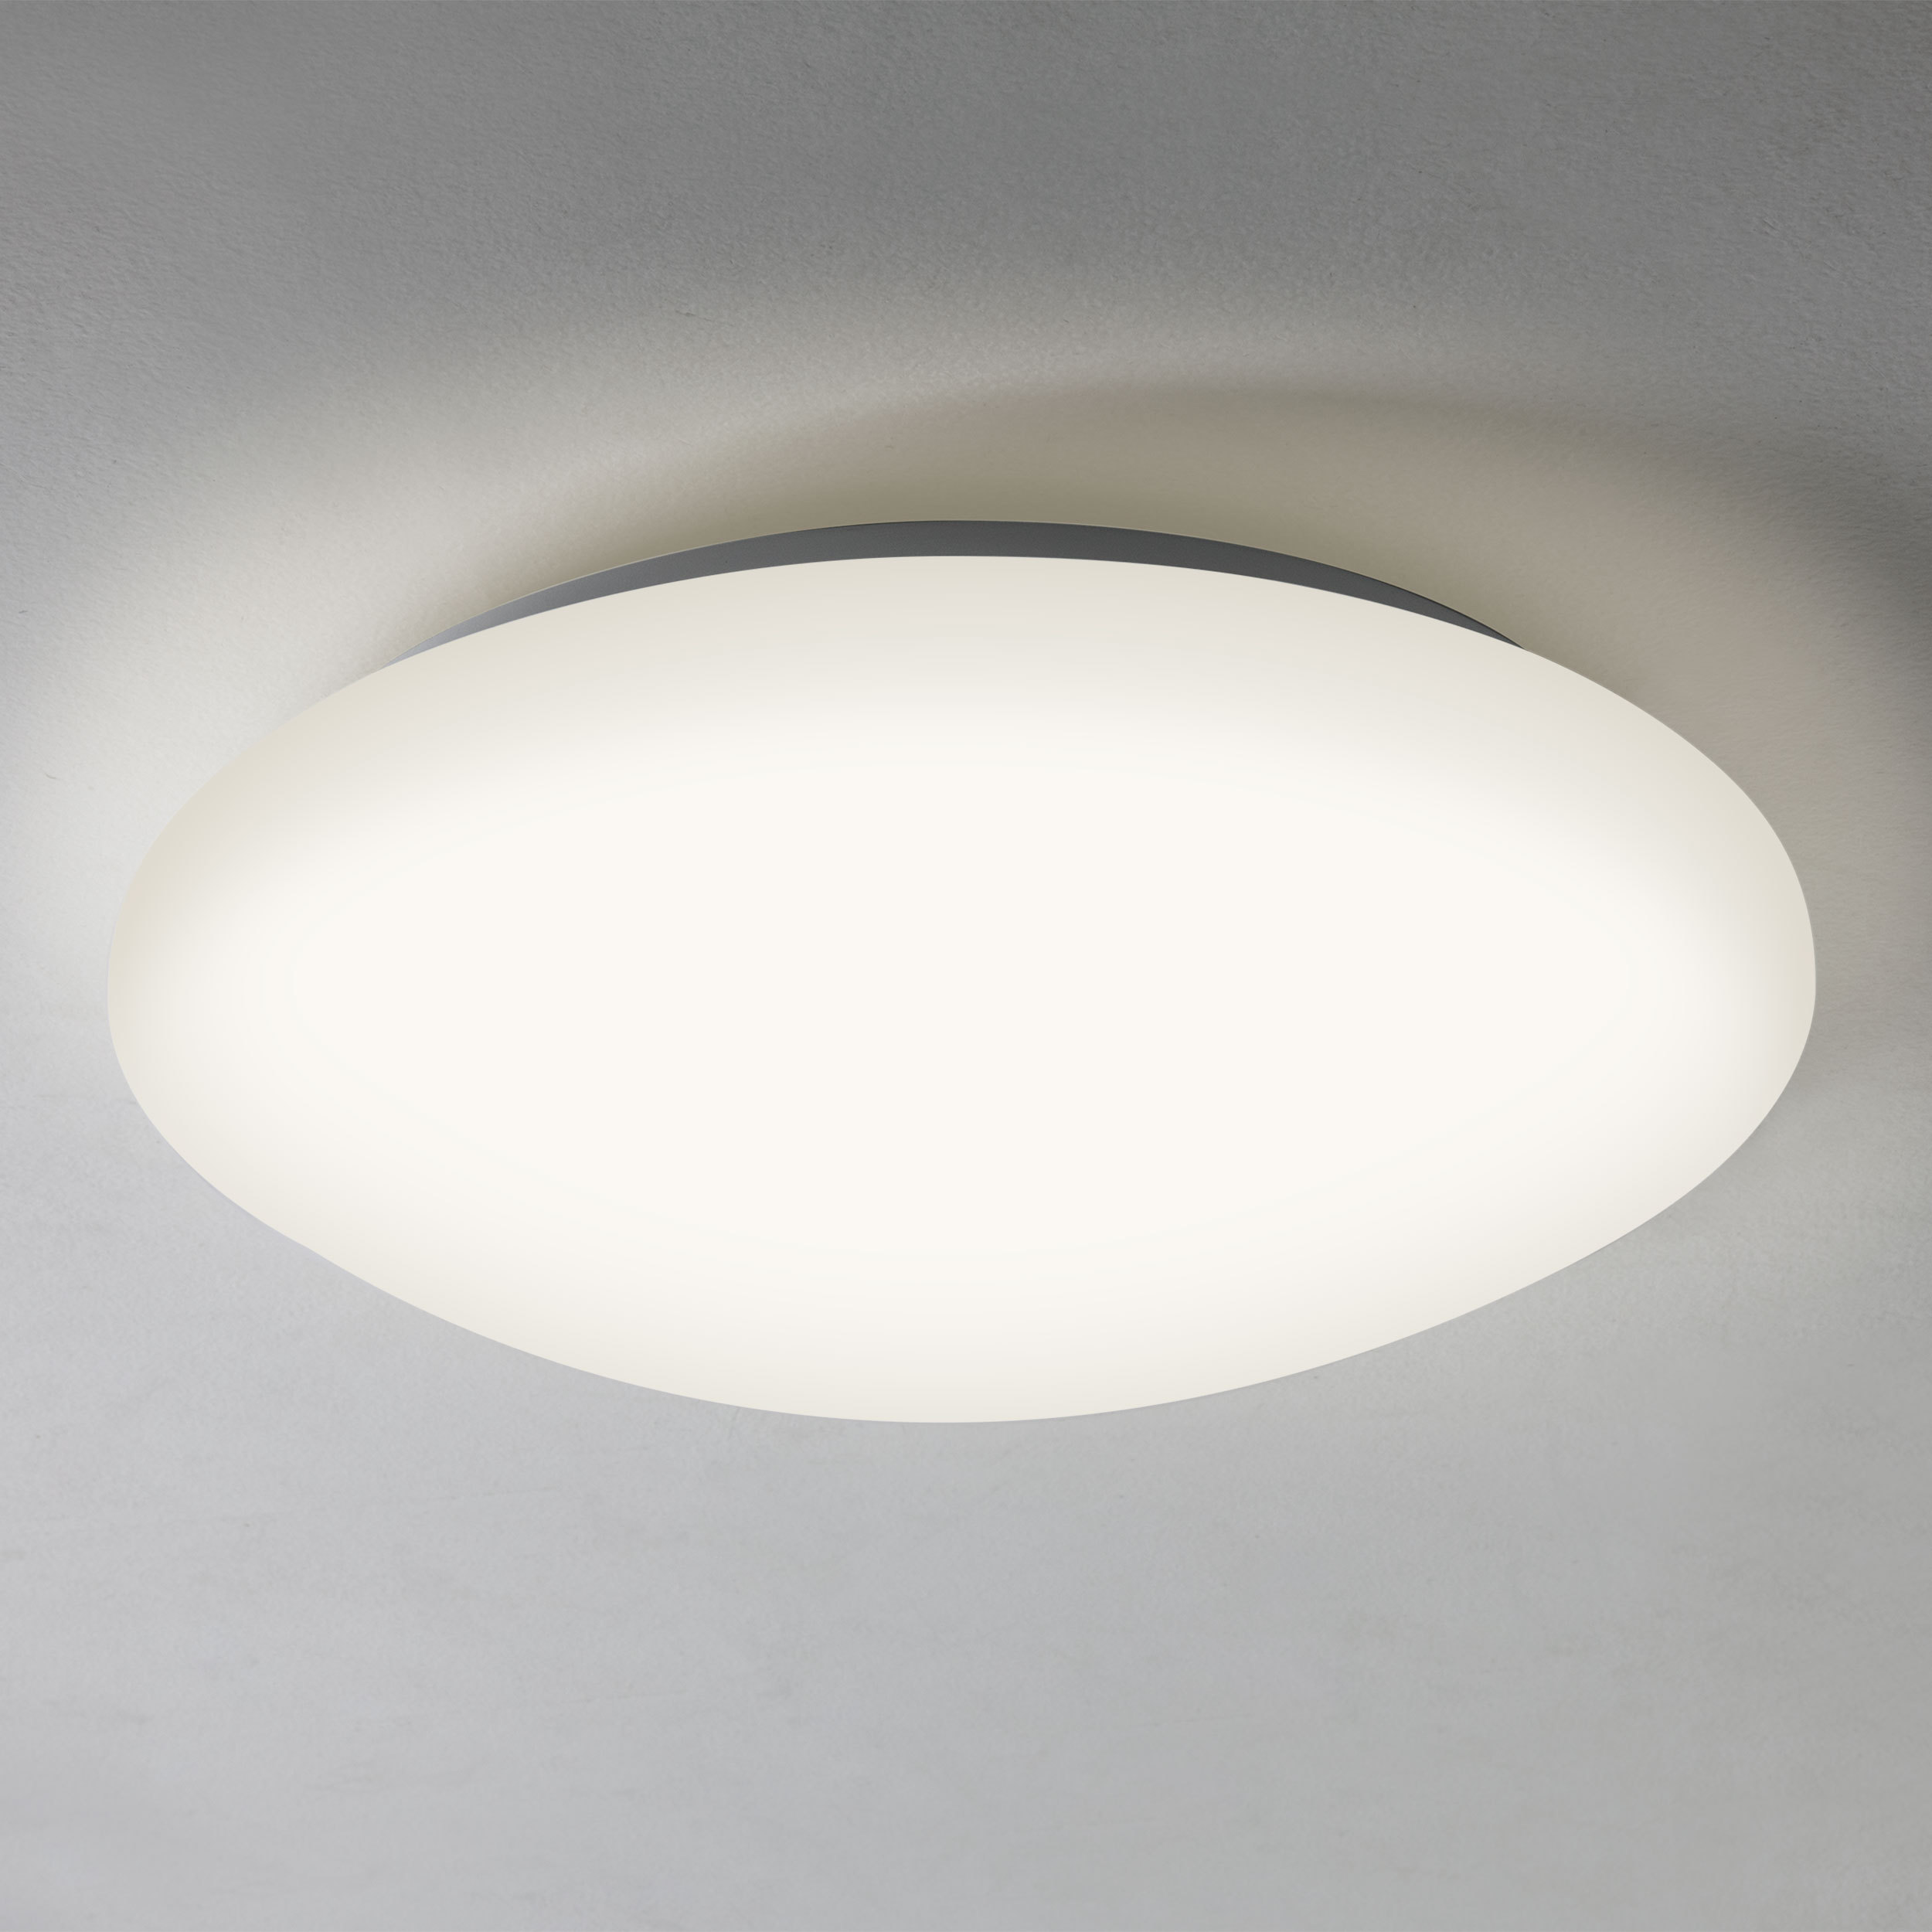 Astro Ma 350 Bathroom Ceiling Light Led White 230v Ip44 Non Dimmable